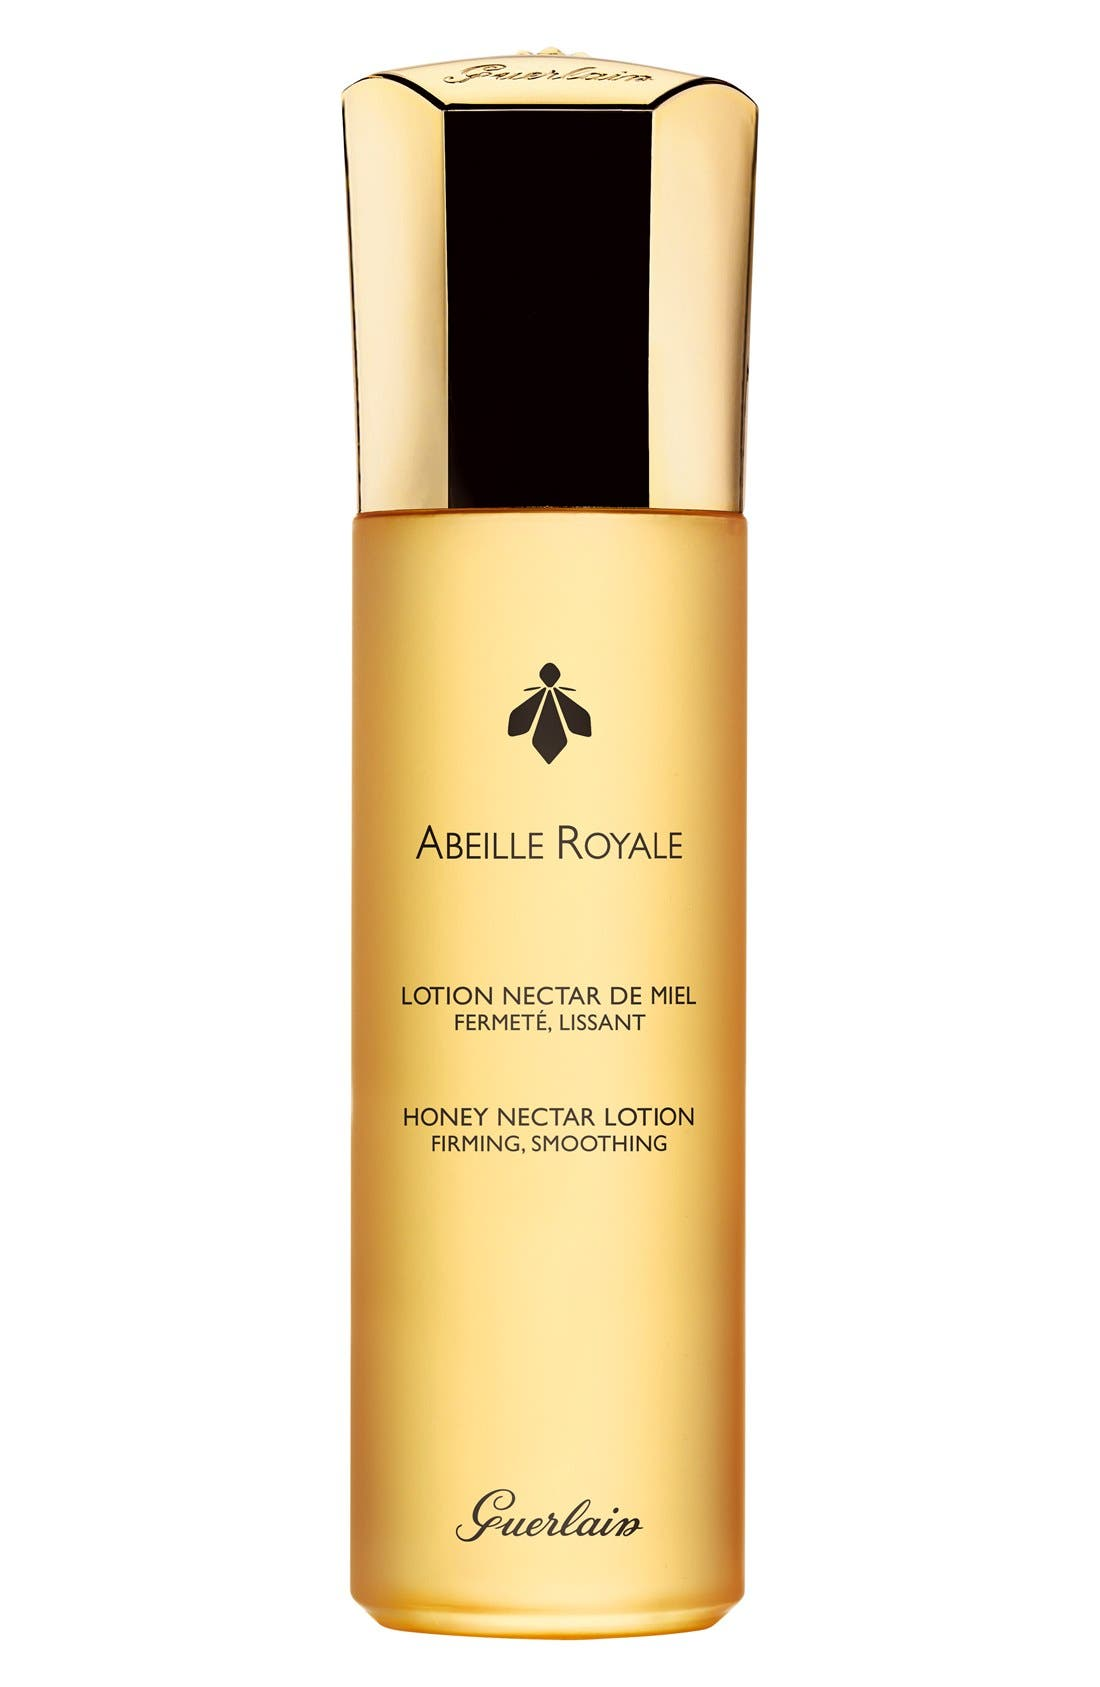 Guerlain 'Abeille Royale' Honey Nectar Lotion